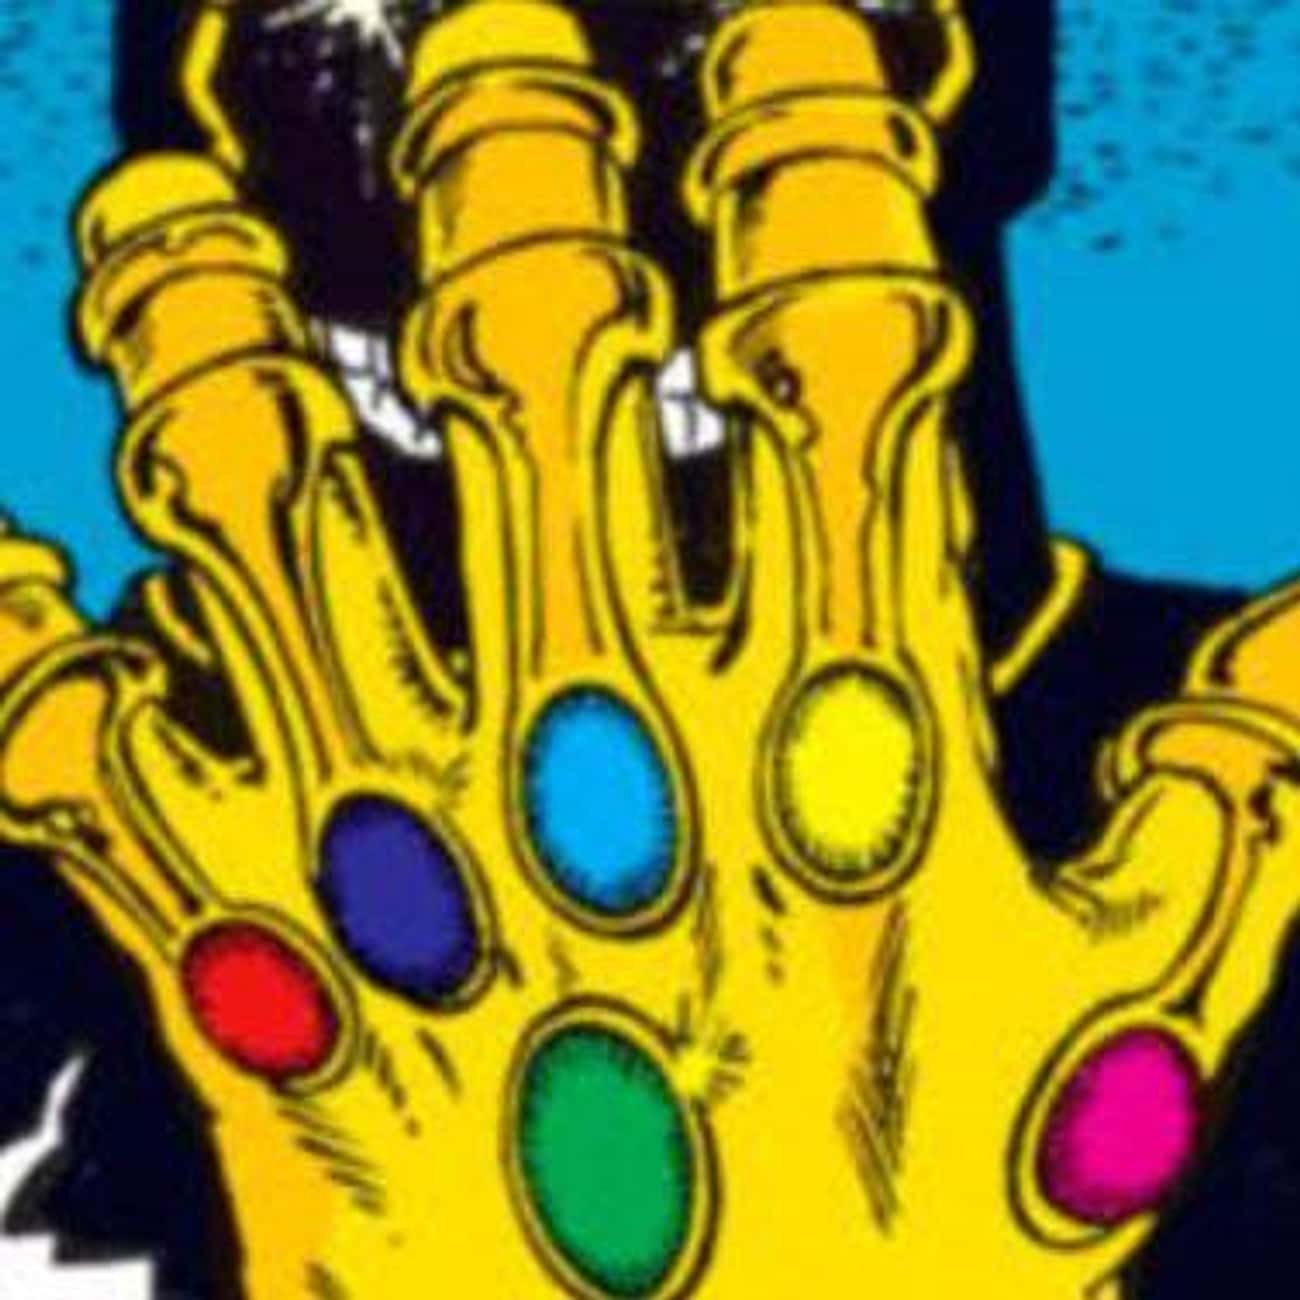 Infinity Gauntlet is listed (or ranked) 1 on the list The Most Powerful Weapons In The Marvel Universe, Ranked By Destructive Force